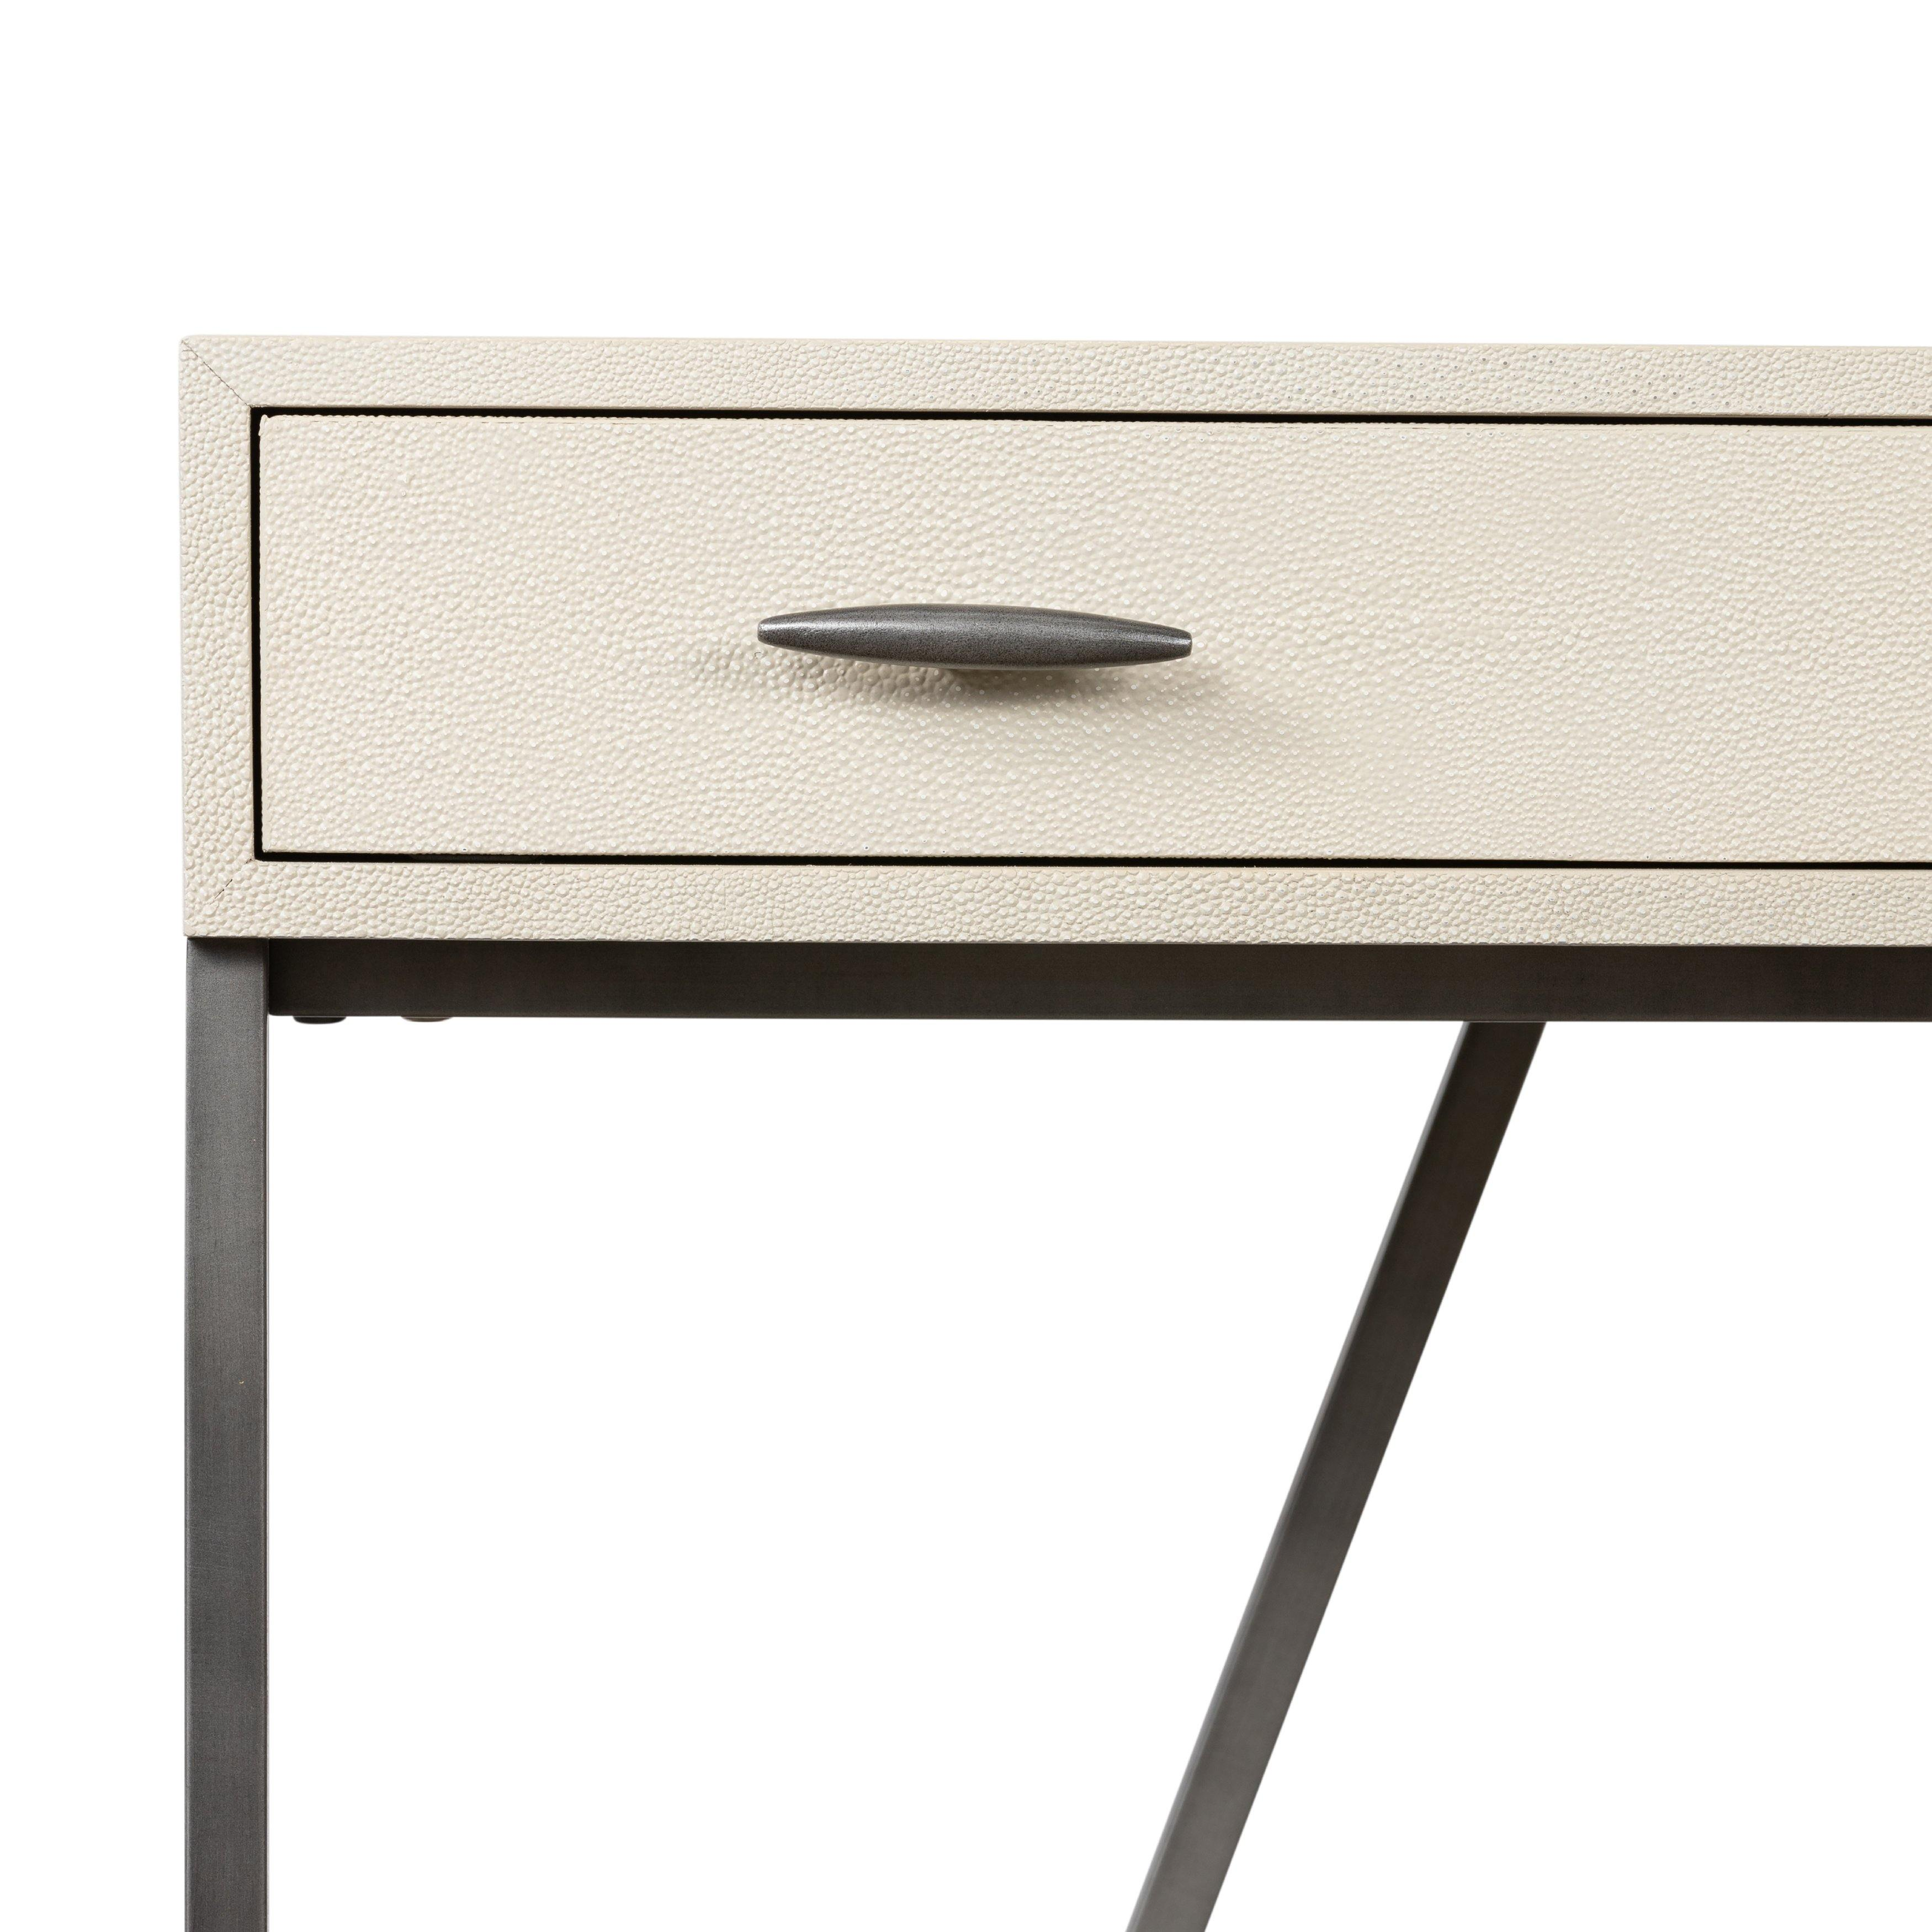 SHAGREEN DESK - Reimagine Designs